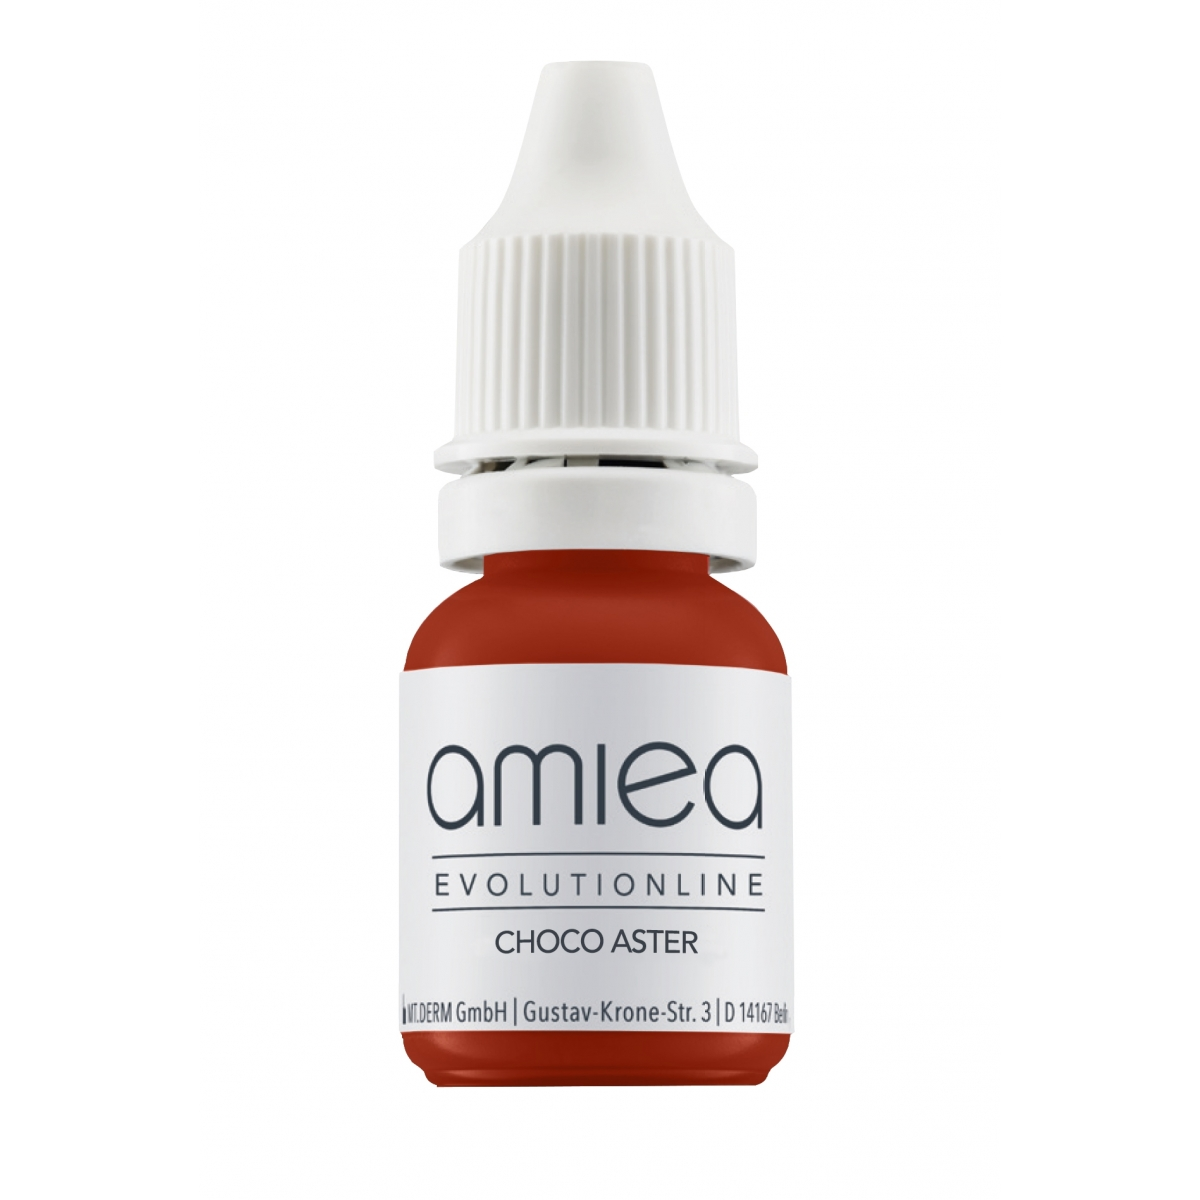 Evolutionline (10 ml) - PIGMENTS AMIEA EVOLUTIONLINE CHOCO ASTER, 10 ml